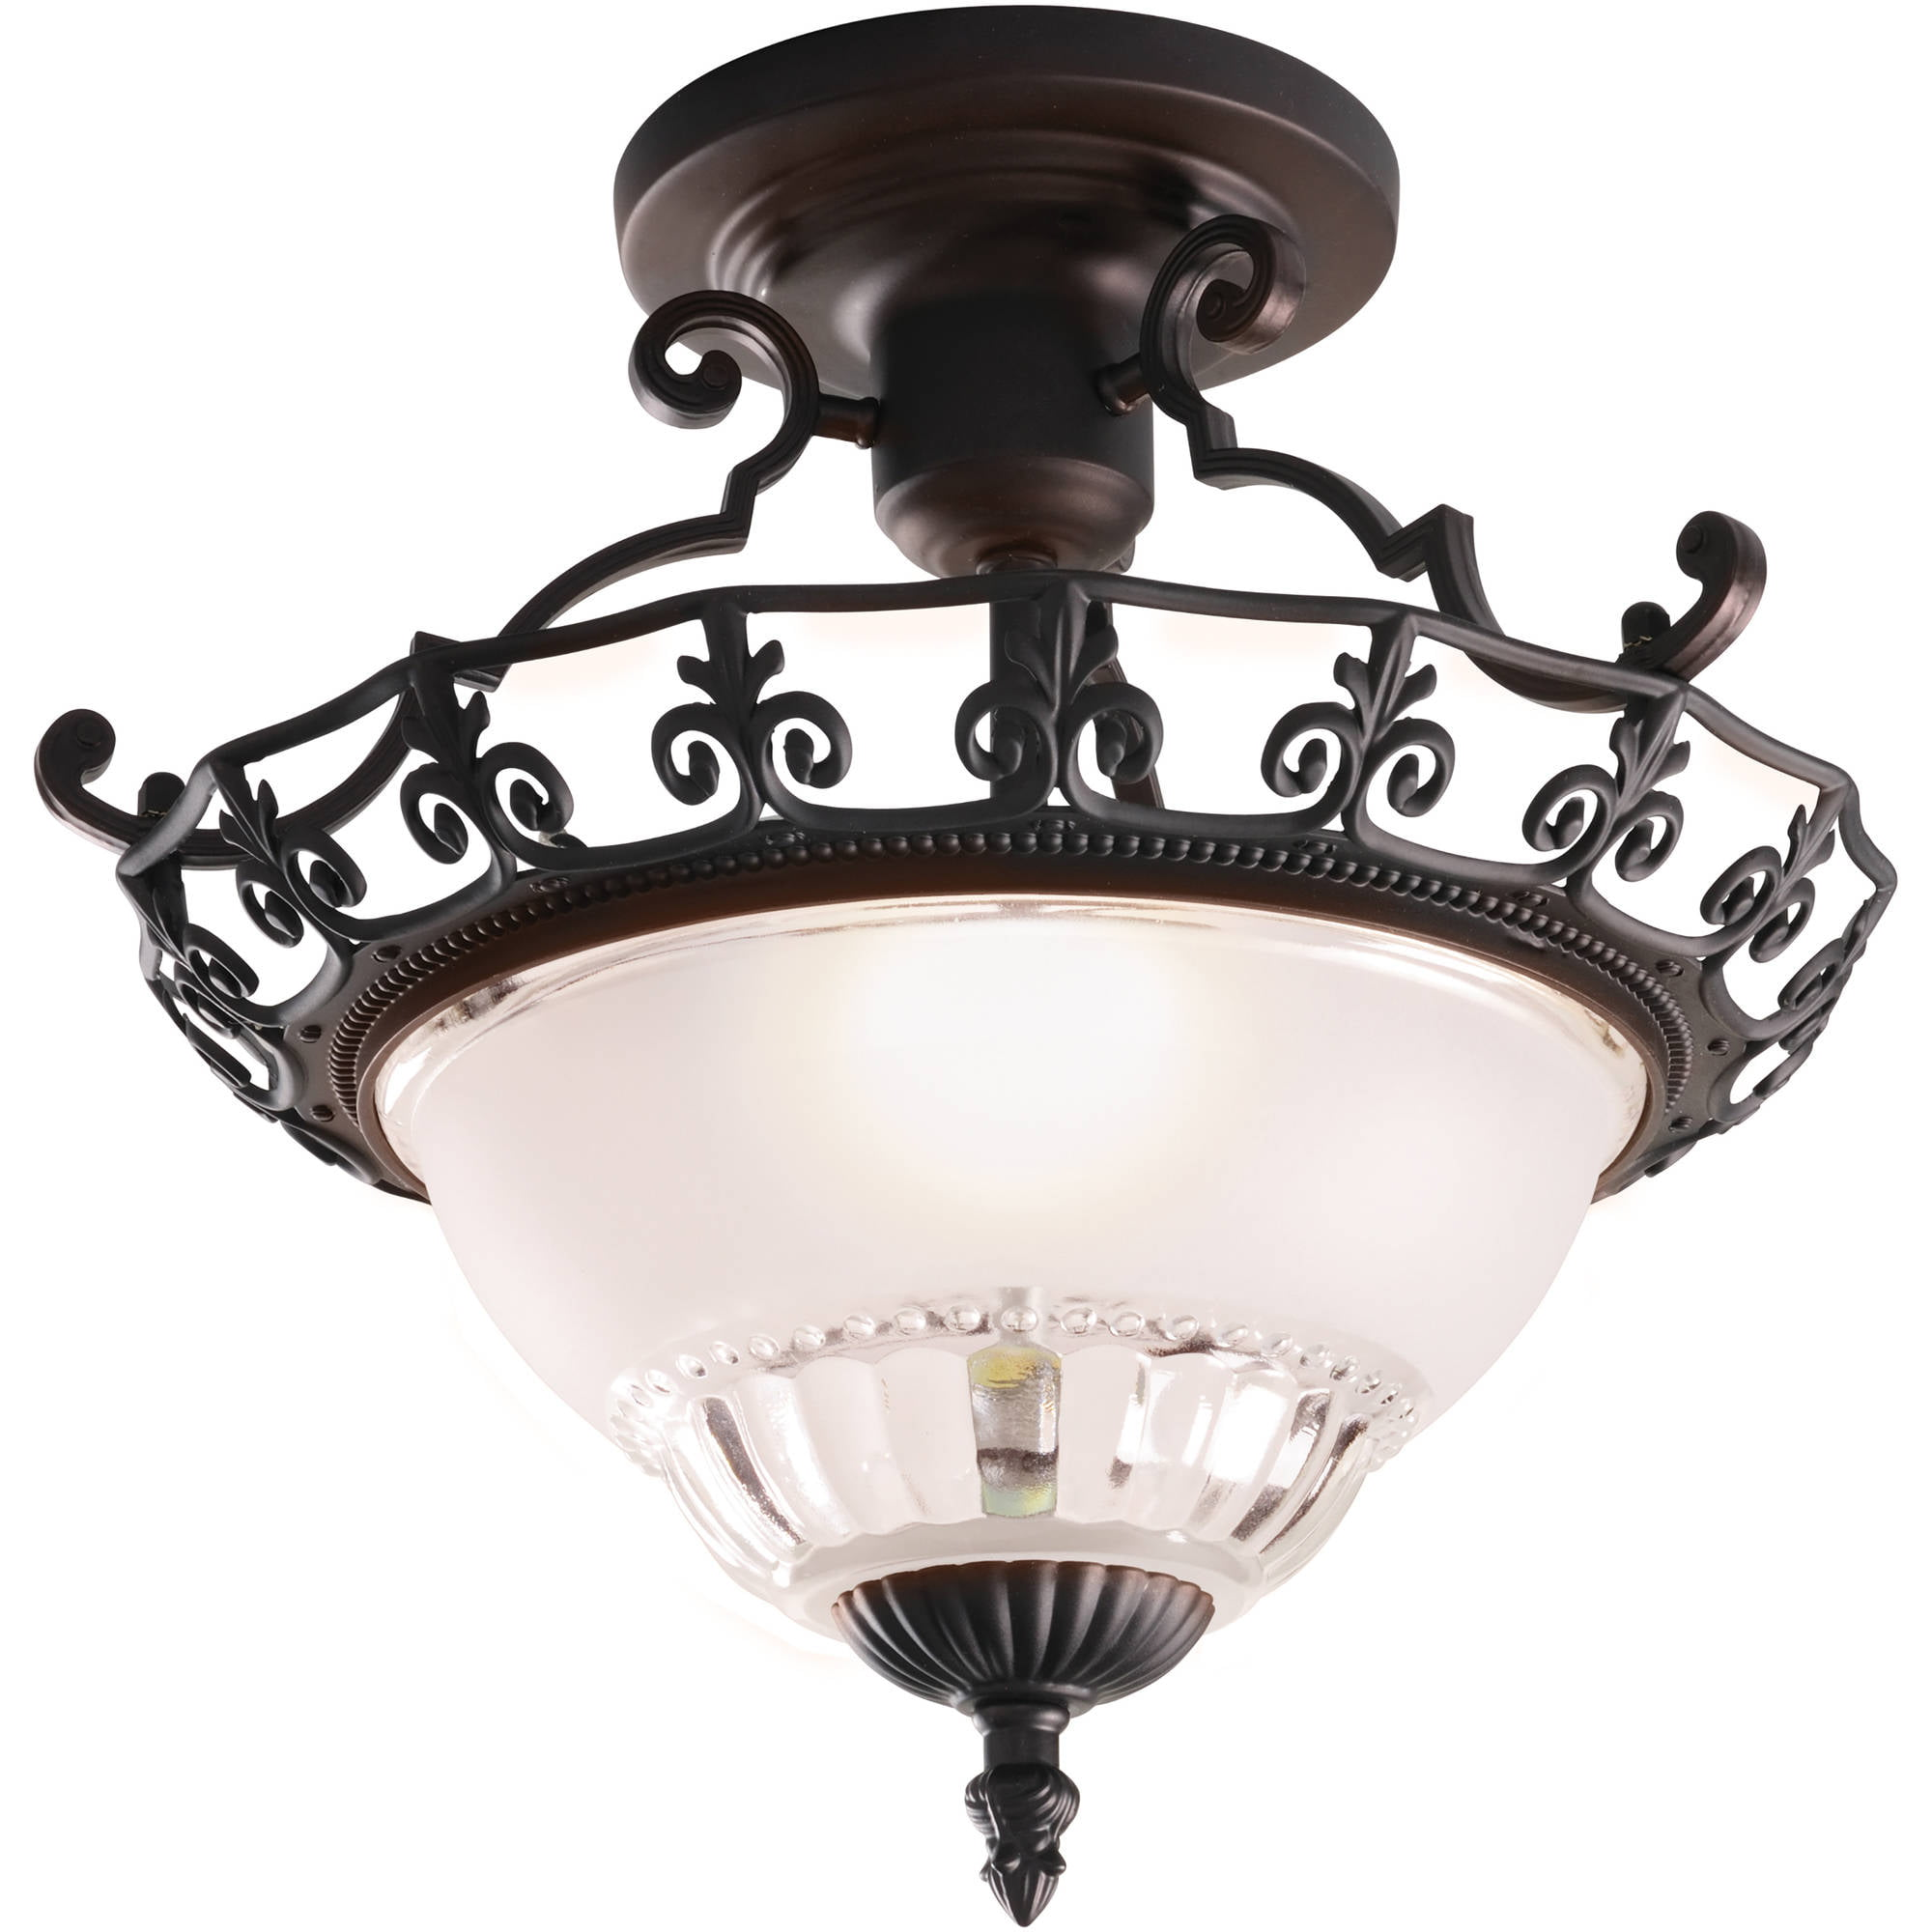 Chapter indoor 1125 ceiling semi flush mount oil rubbed bronze chapter indoor 1125 ceiling semi flush mount oil rubbed bronze walmart aloadofball Choice Image